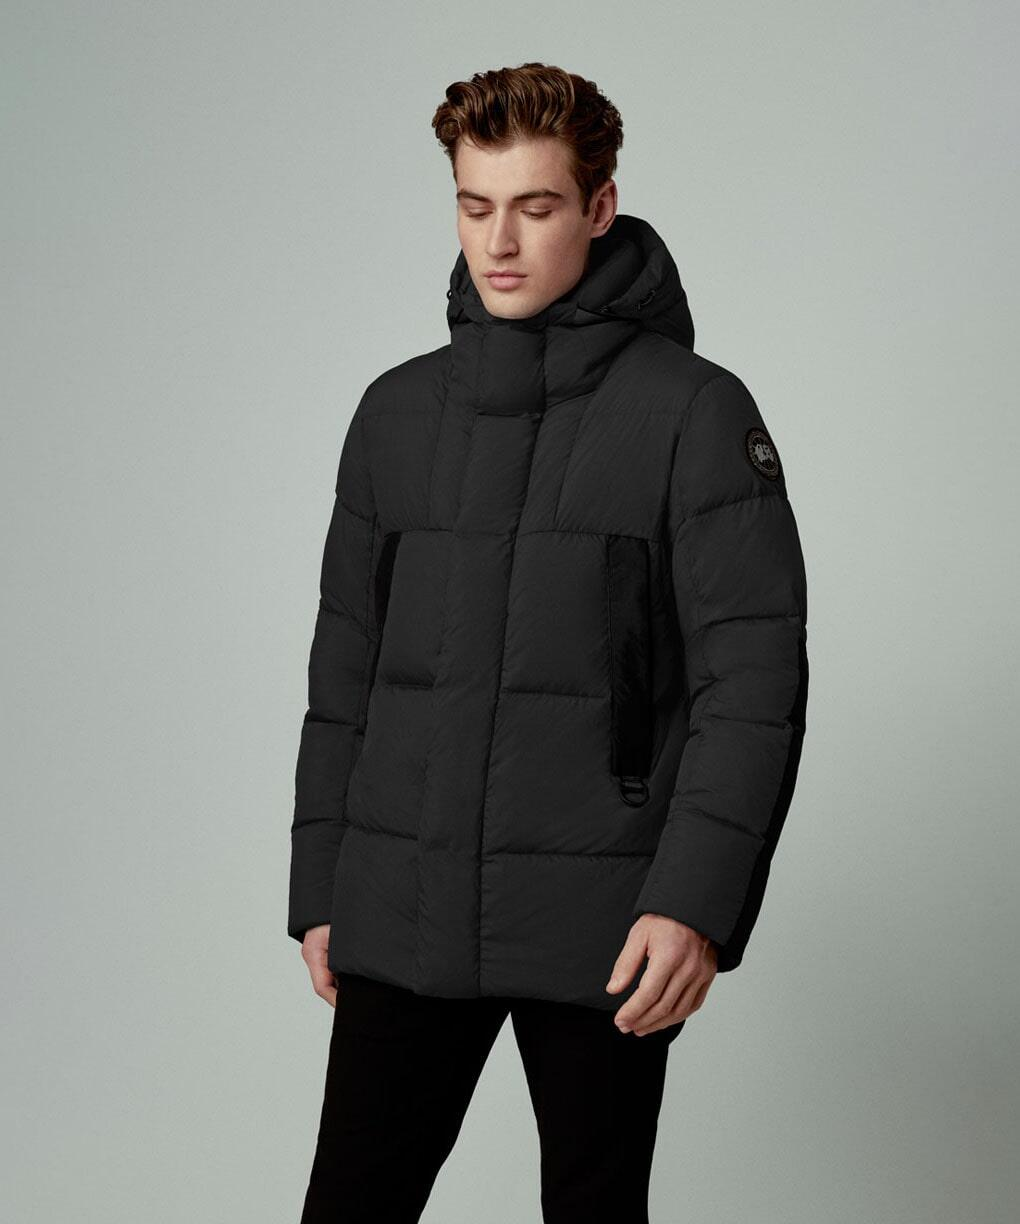 OSBORNE PARKA BLACK LABEL